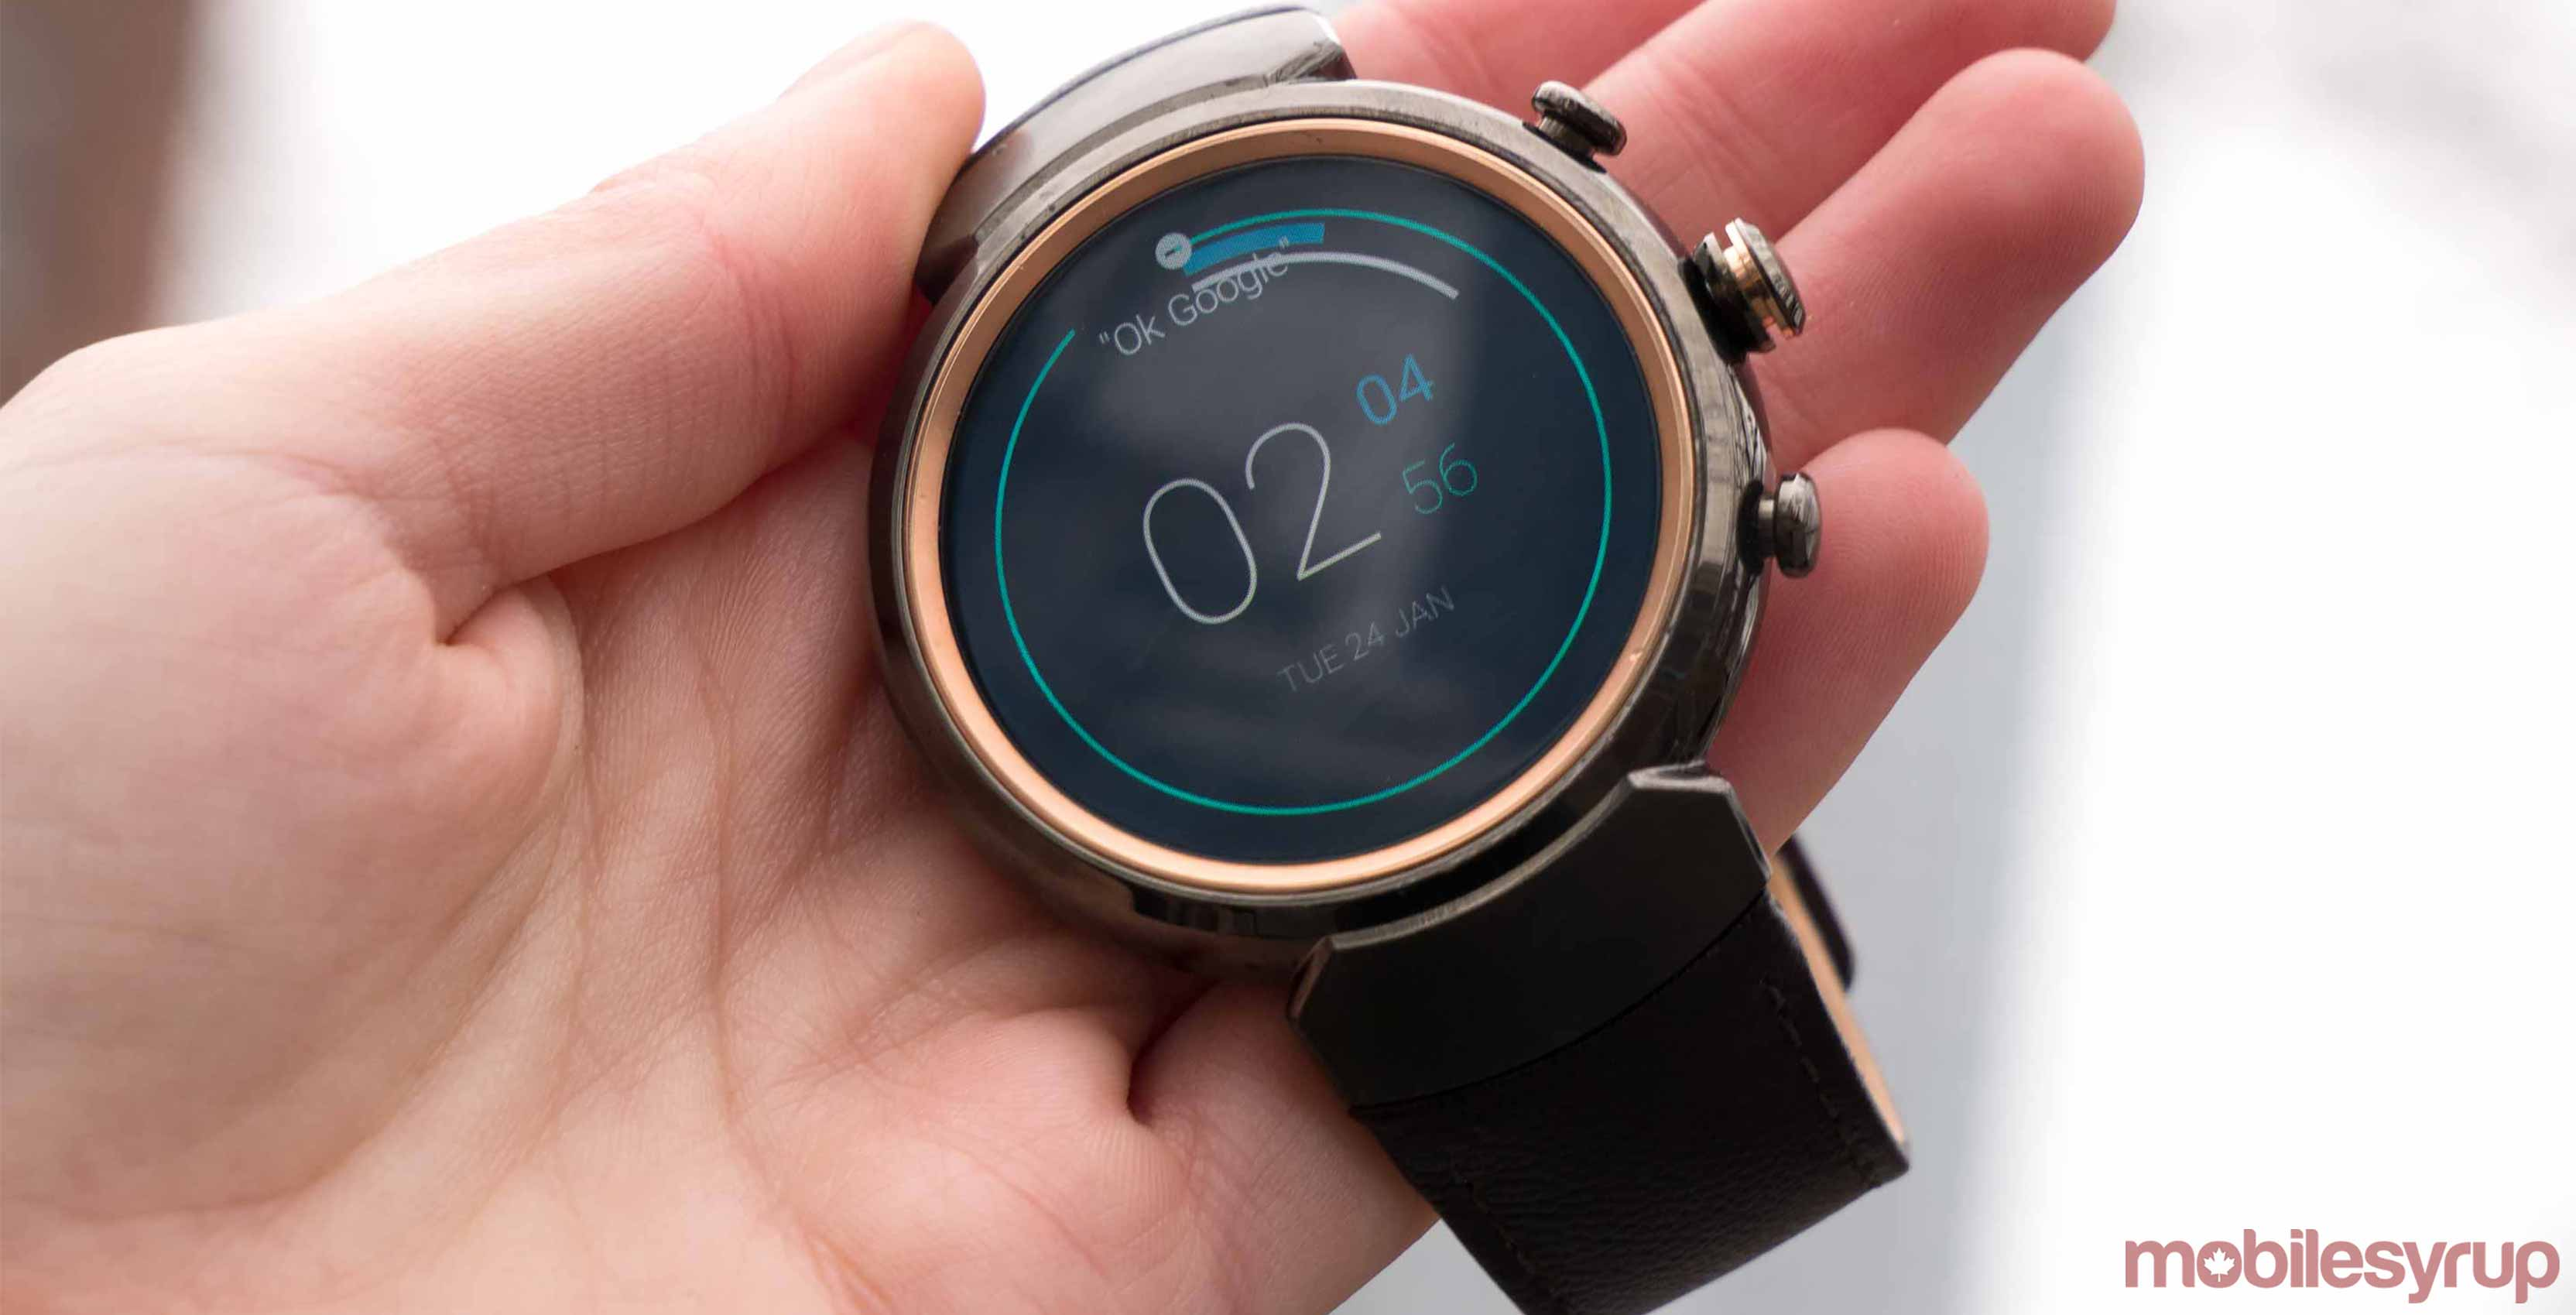 ZenWatch 3 running Android Wear 2.0